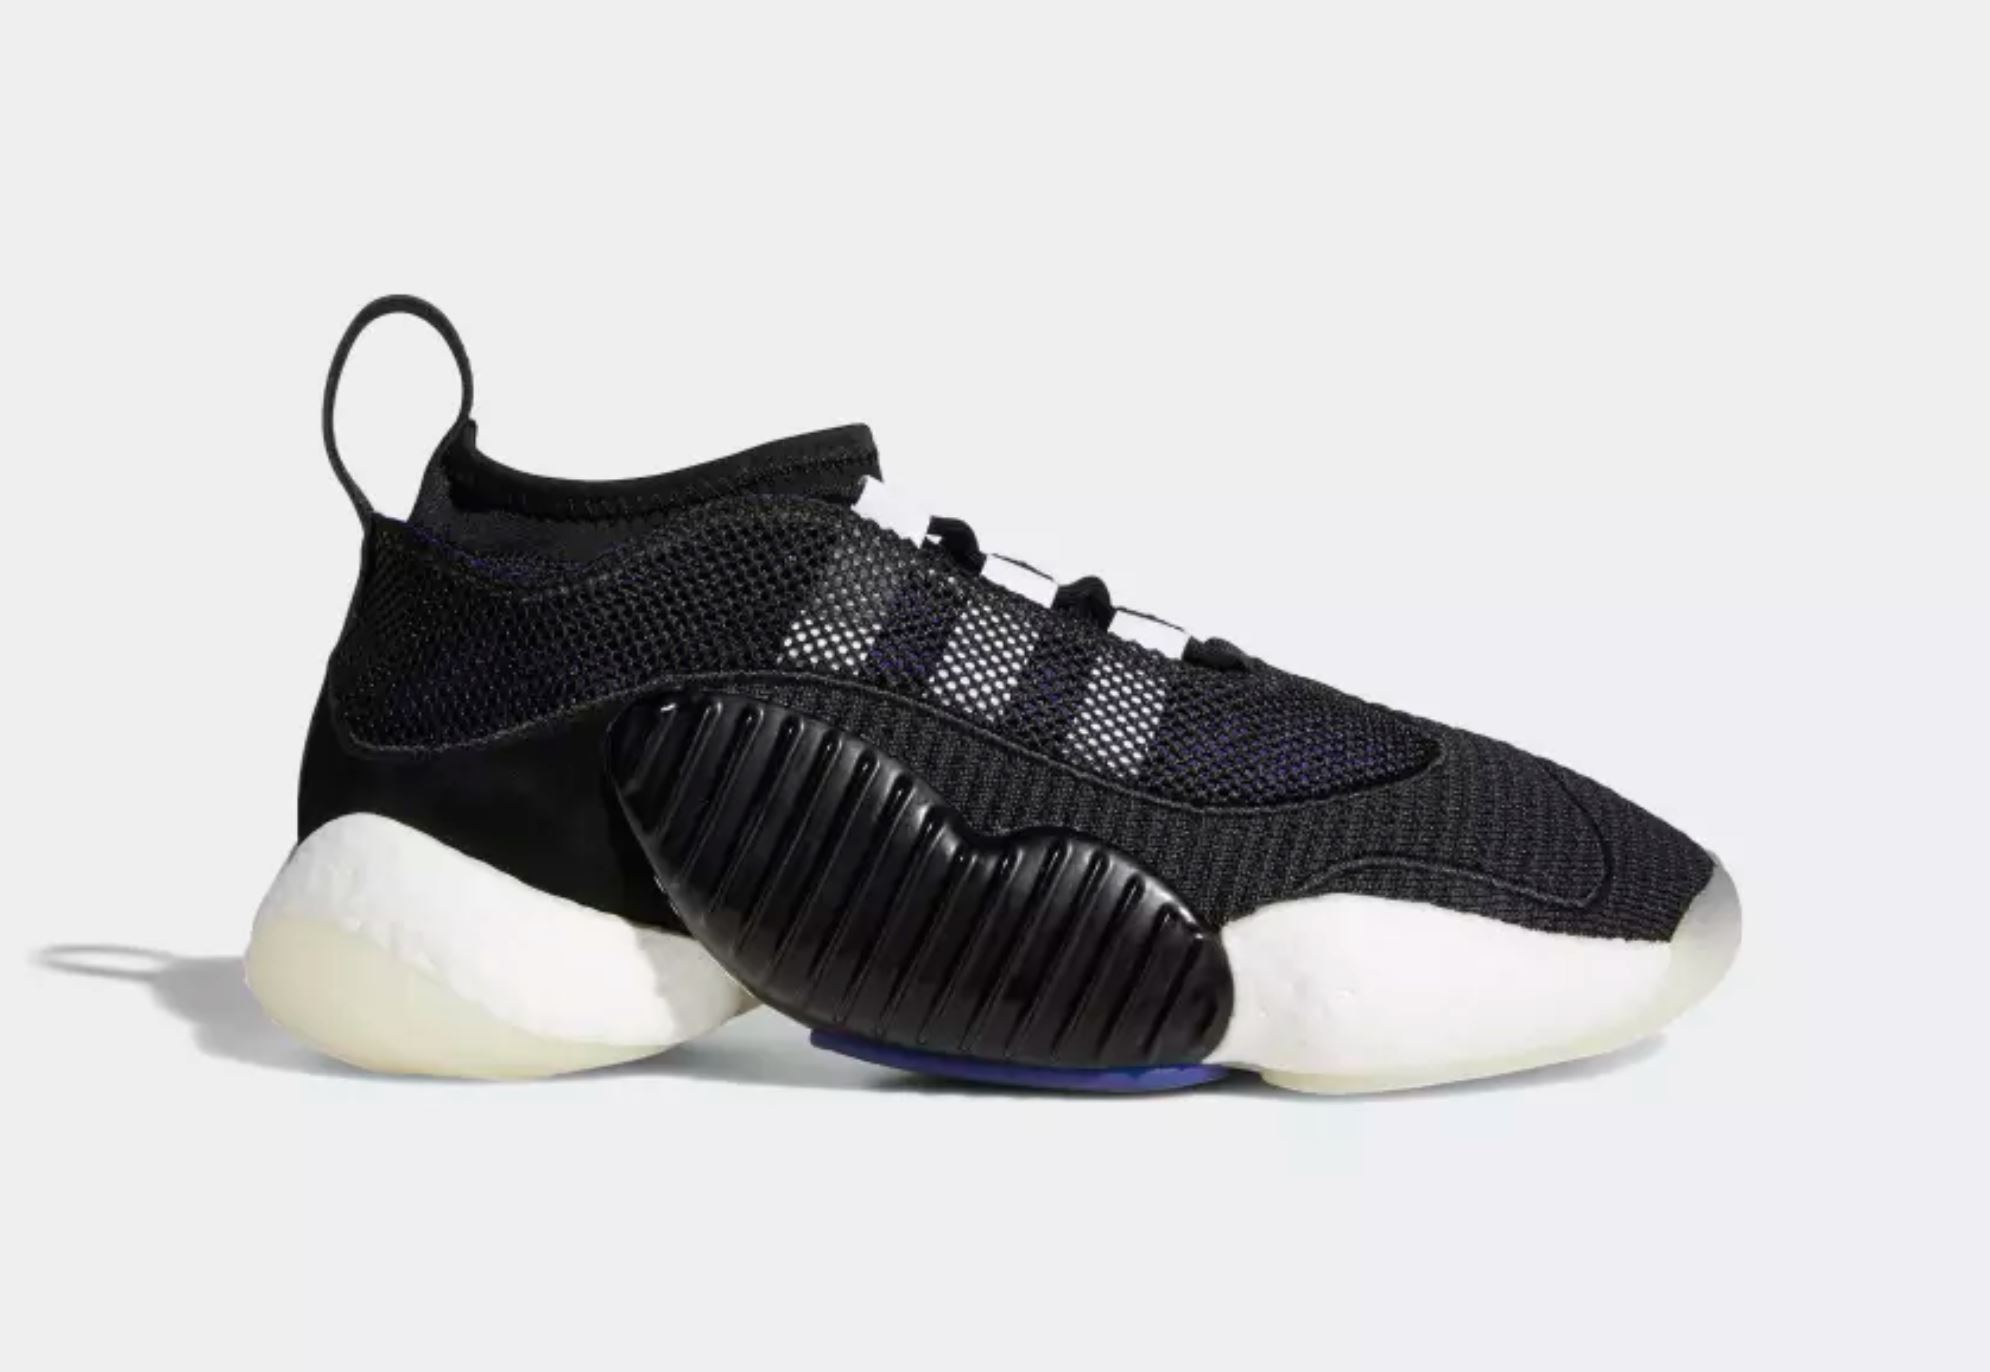 6729106e8141a The adidas Crazy BYW II Releases Tomorrow, With Several Big Changes ...